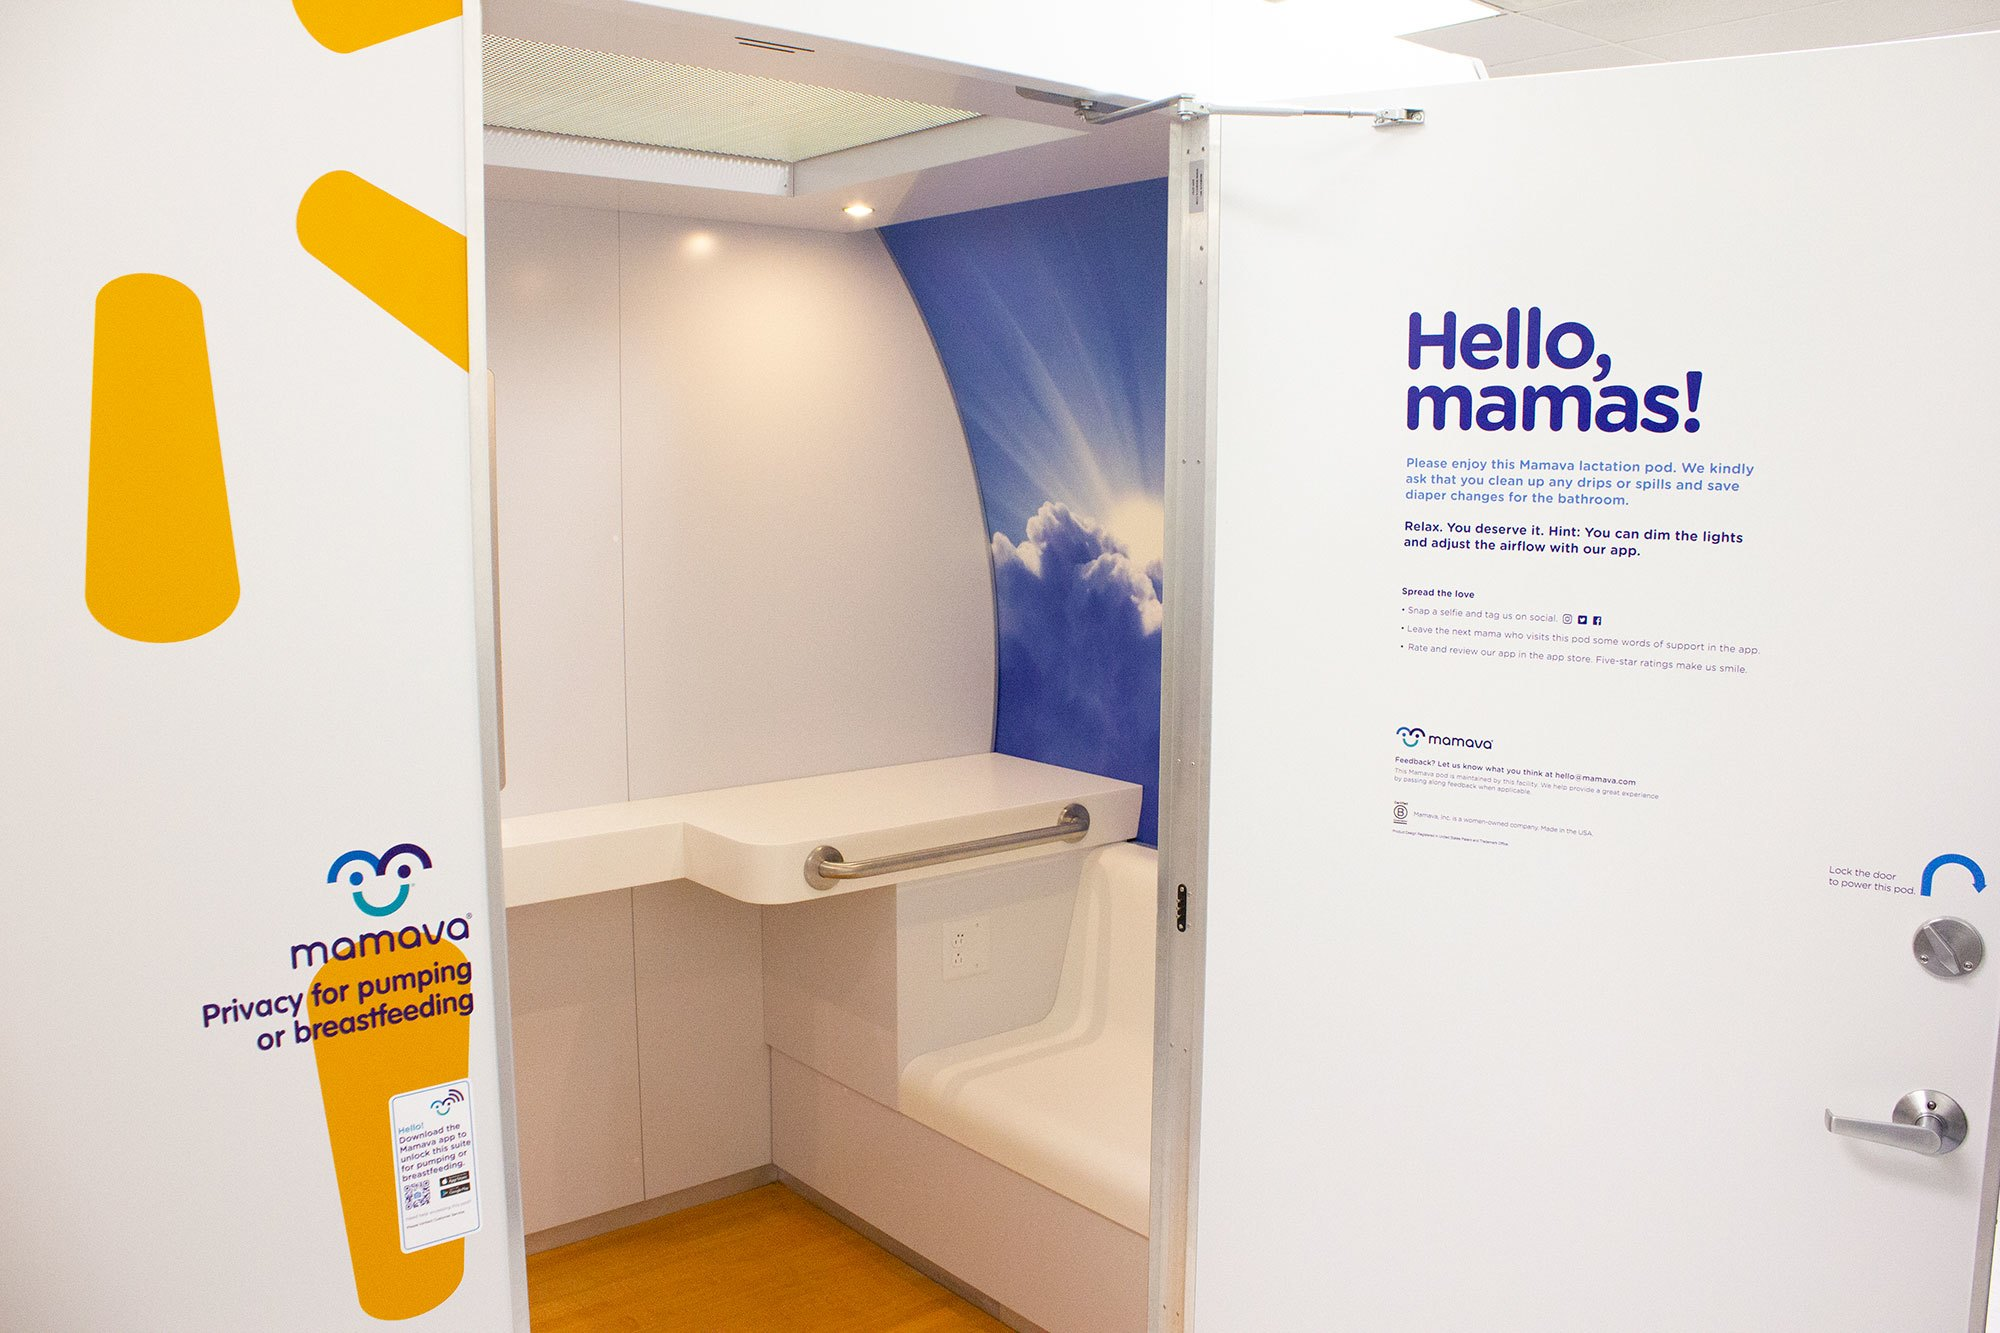 Mamava Lactation Room at Walmart